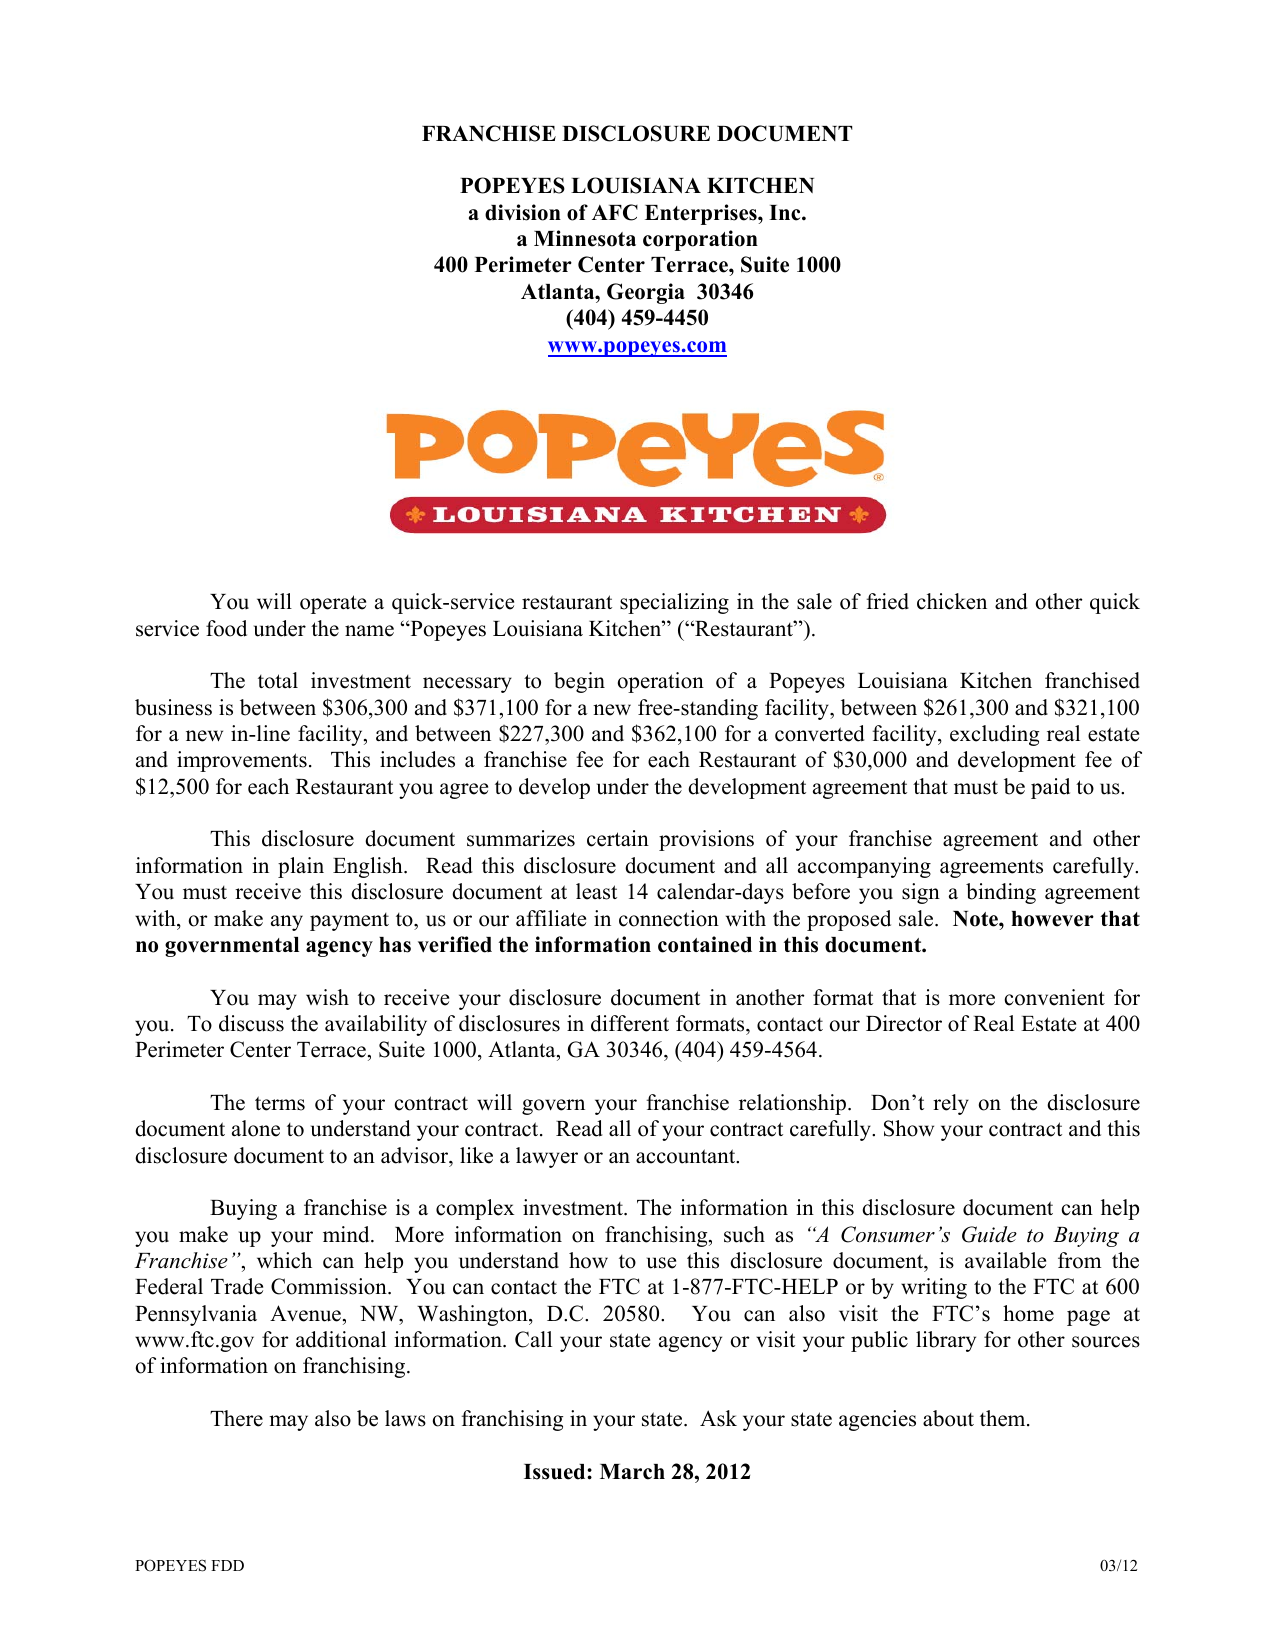 Franchise Disclosure Document for Popeyes